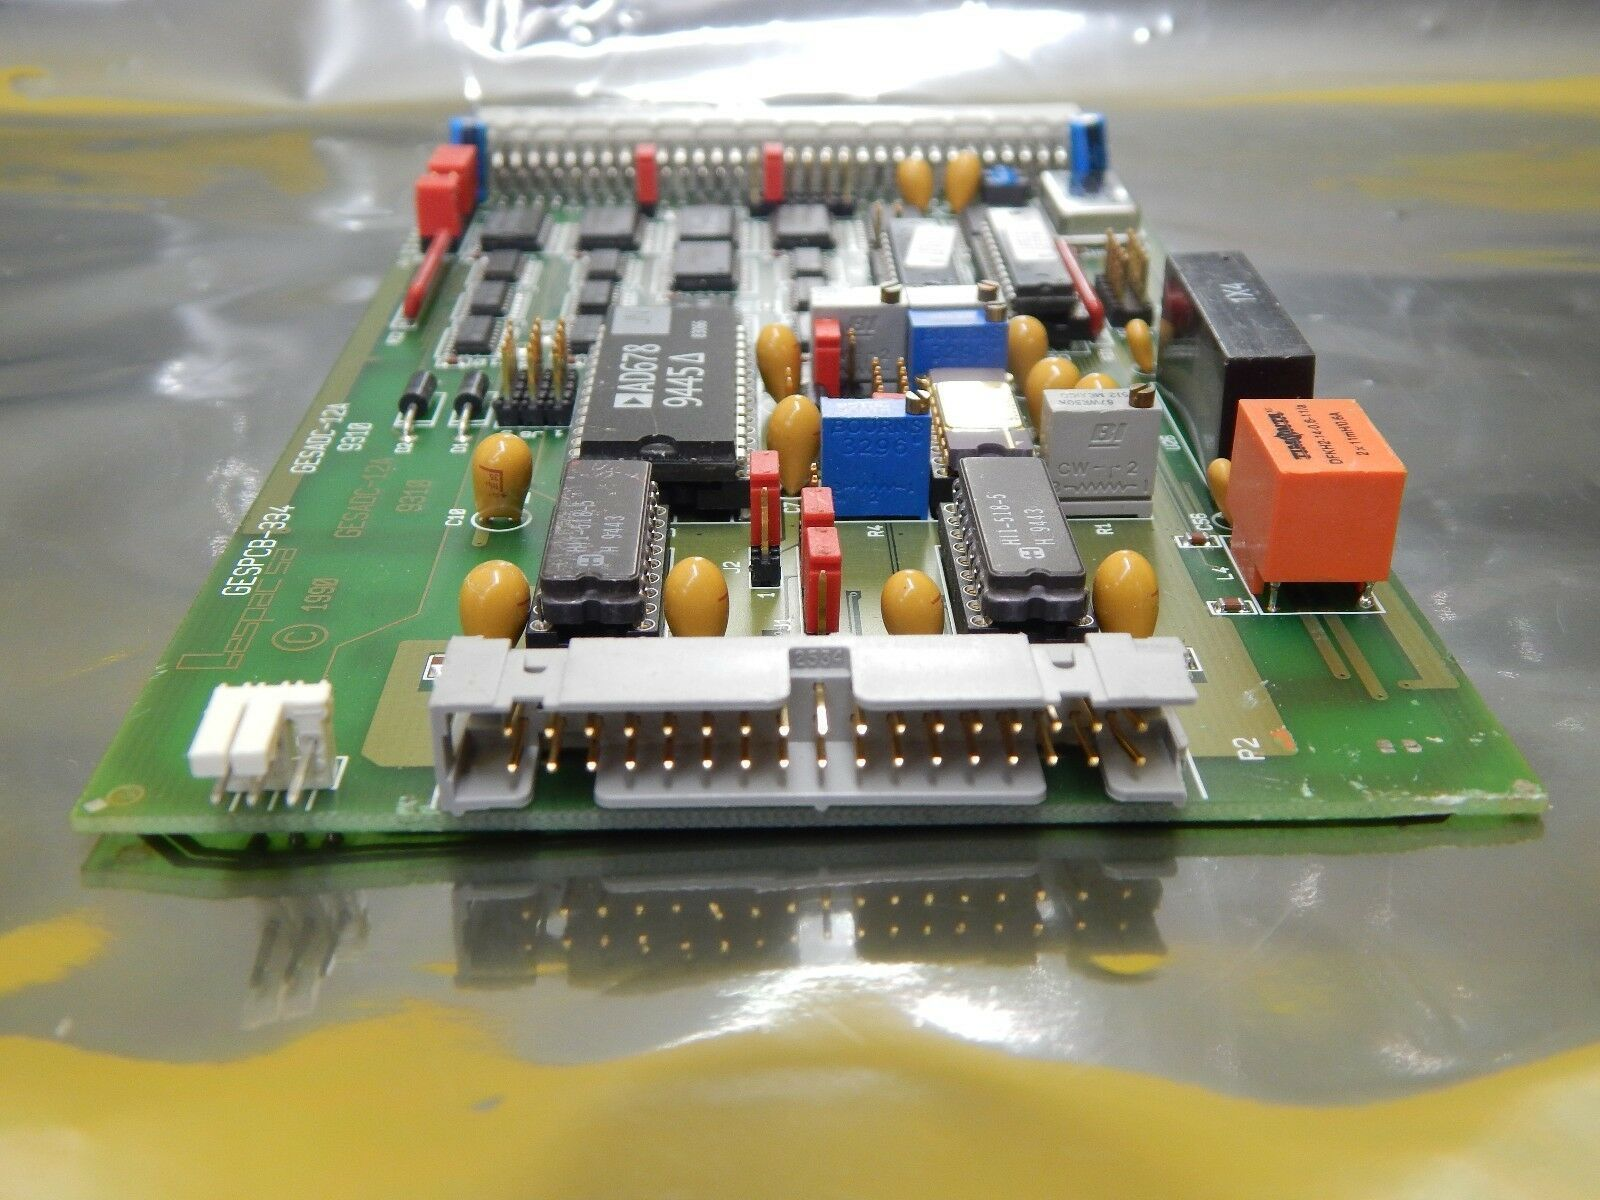 Gespac GESADC-12A ADC PCB Card GESPCB-334 ADC-12A OnTrak DSS-200 Used Working